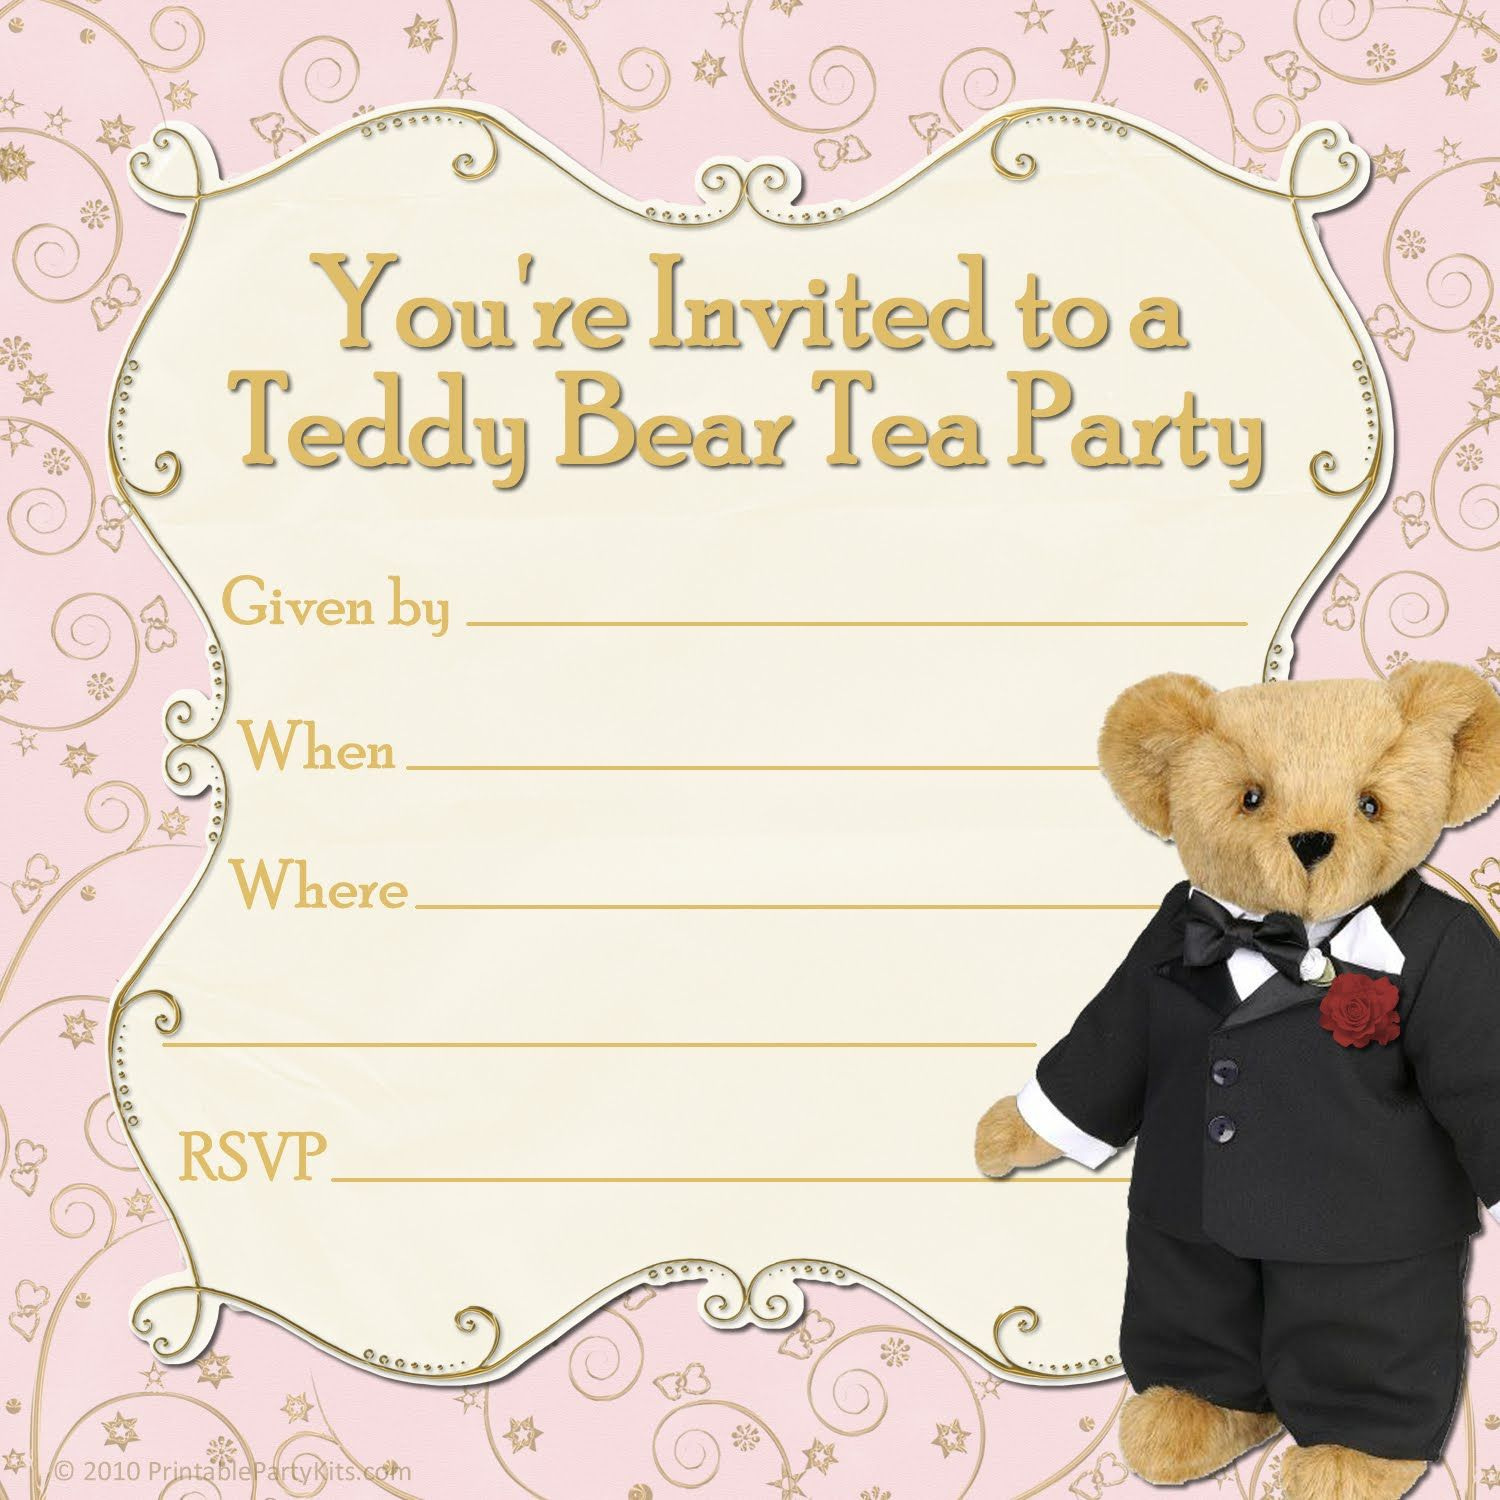 Teddy bear Party Invitations Templates Free | Free Printable Party ...